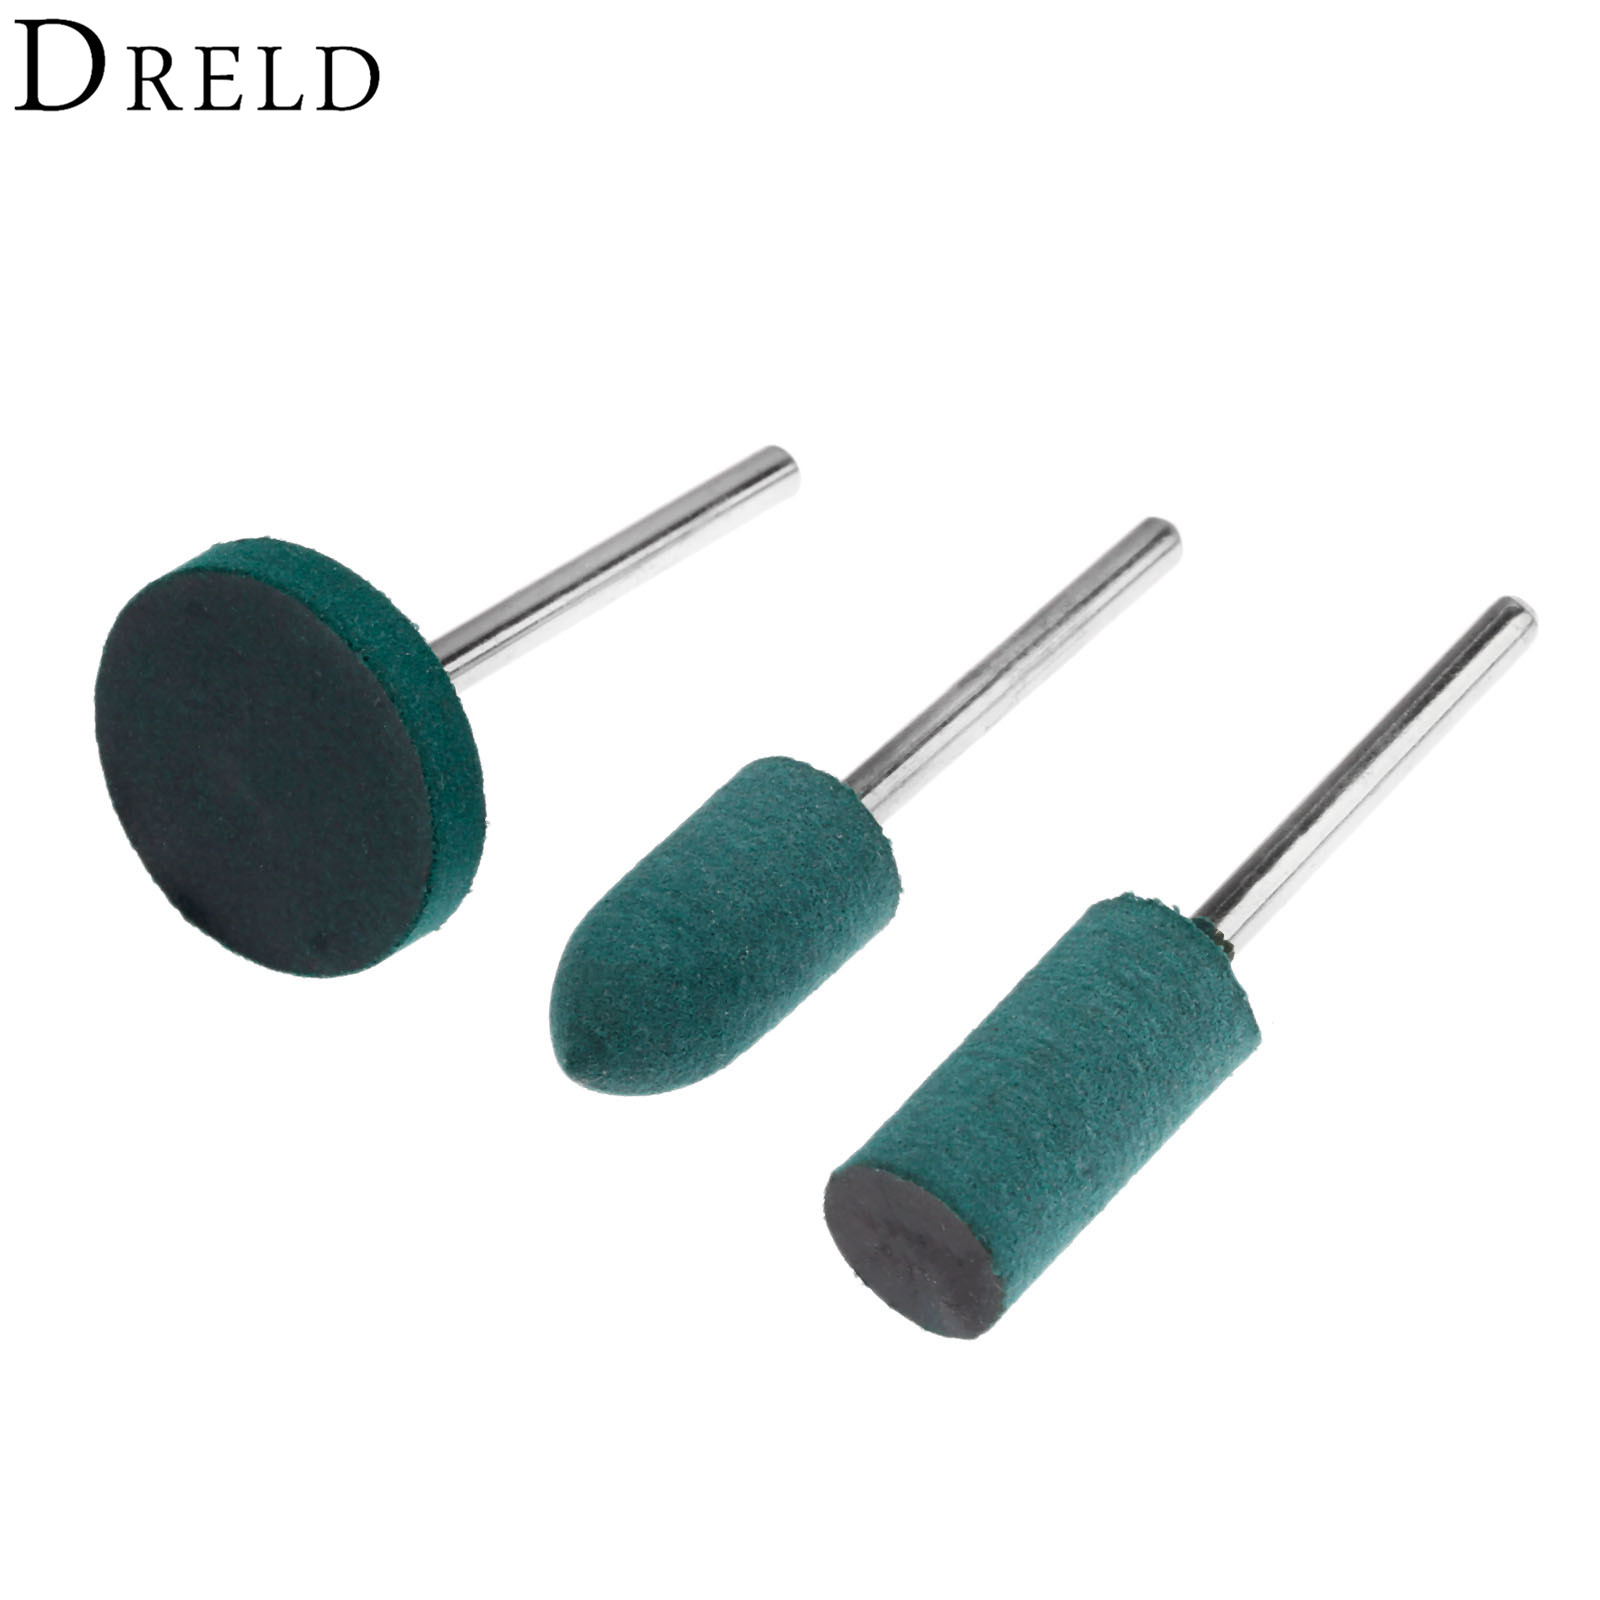 DRELD 3Pcs/set Rubber Grinding Head Polishing Buffing Wheel For Electric Mini Grinder Dremel Rotary Tools Cylinder+Bullet+T Type